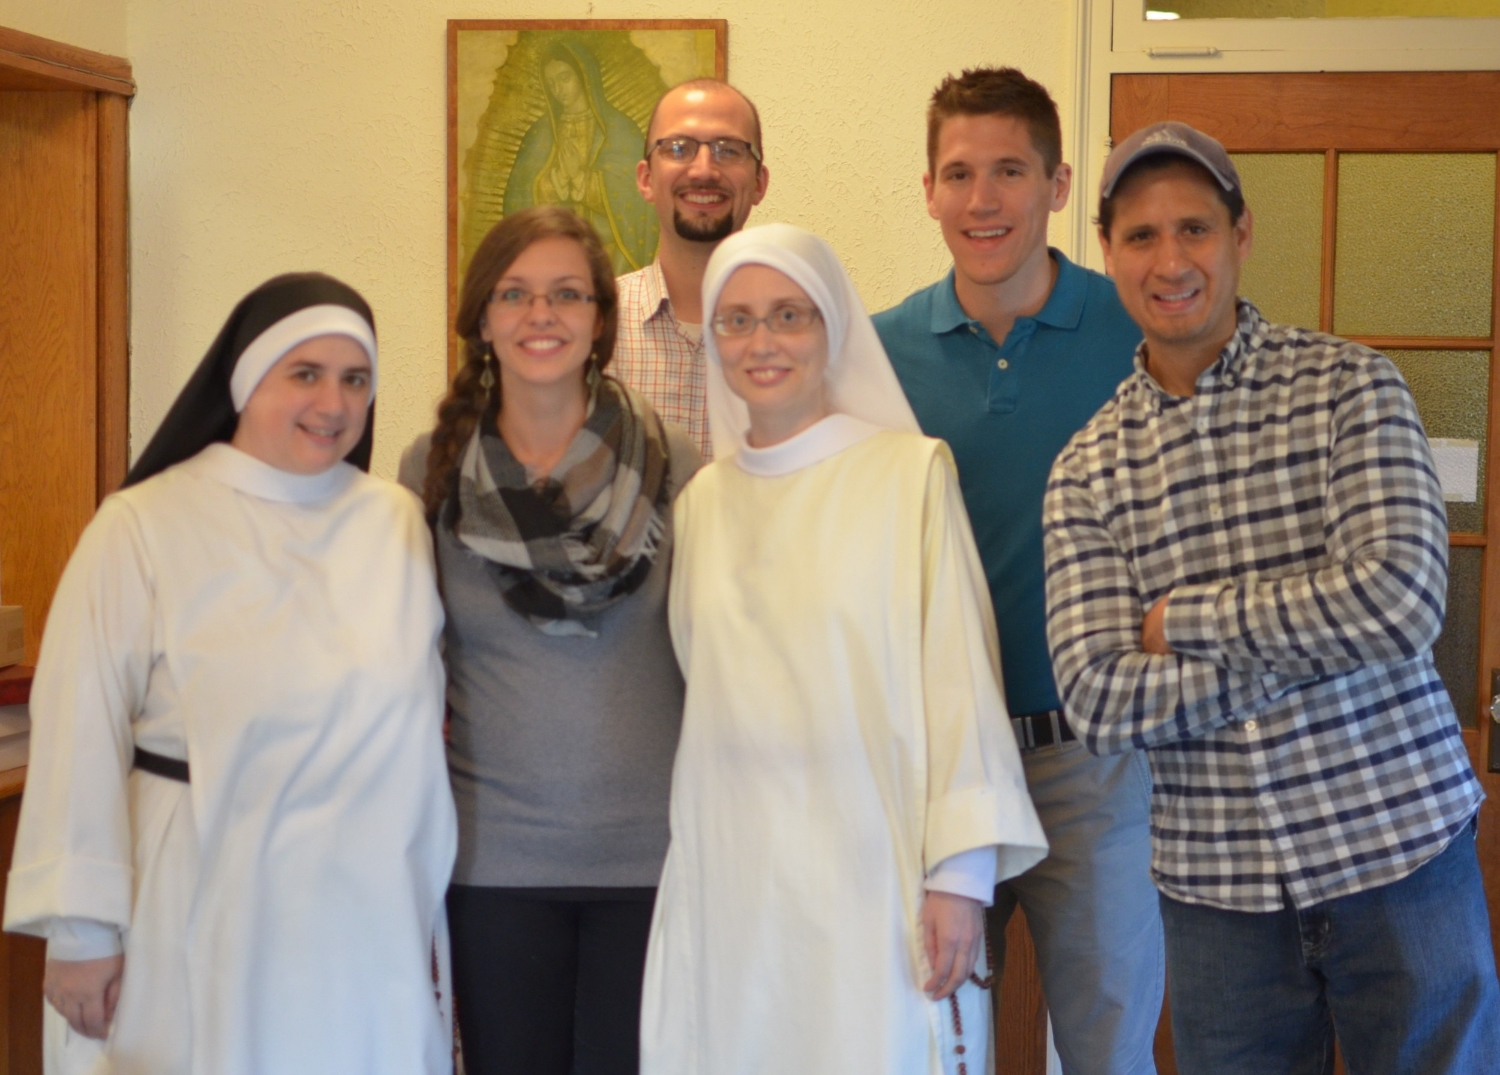 Sr. Mary Catharine and Sr. Maria Johanna with the crew of the 700 Club! L-R: Dustine Anderson, Heinrich, Jarrod Anderson and Victor.